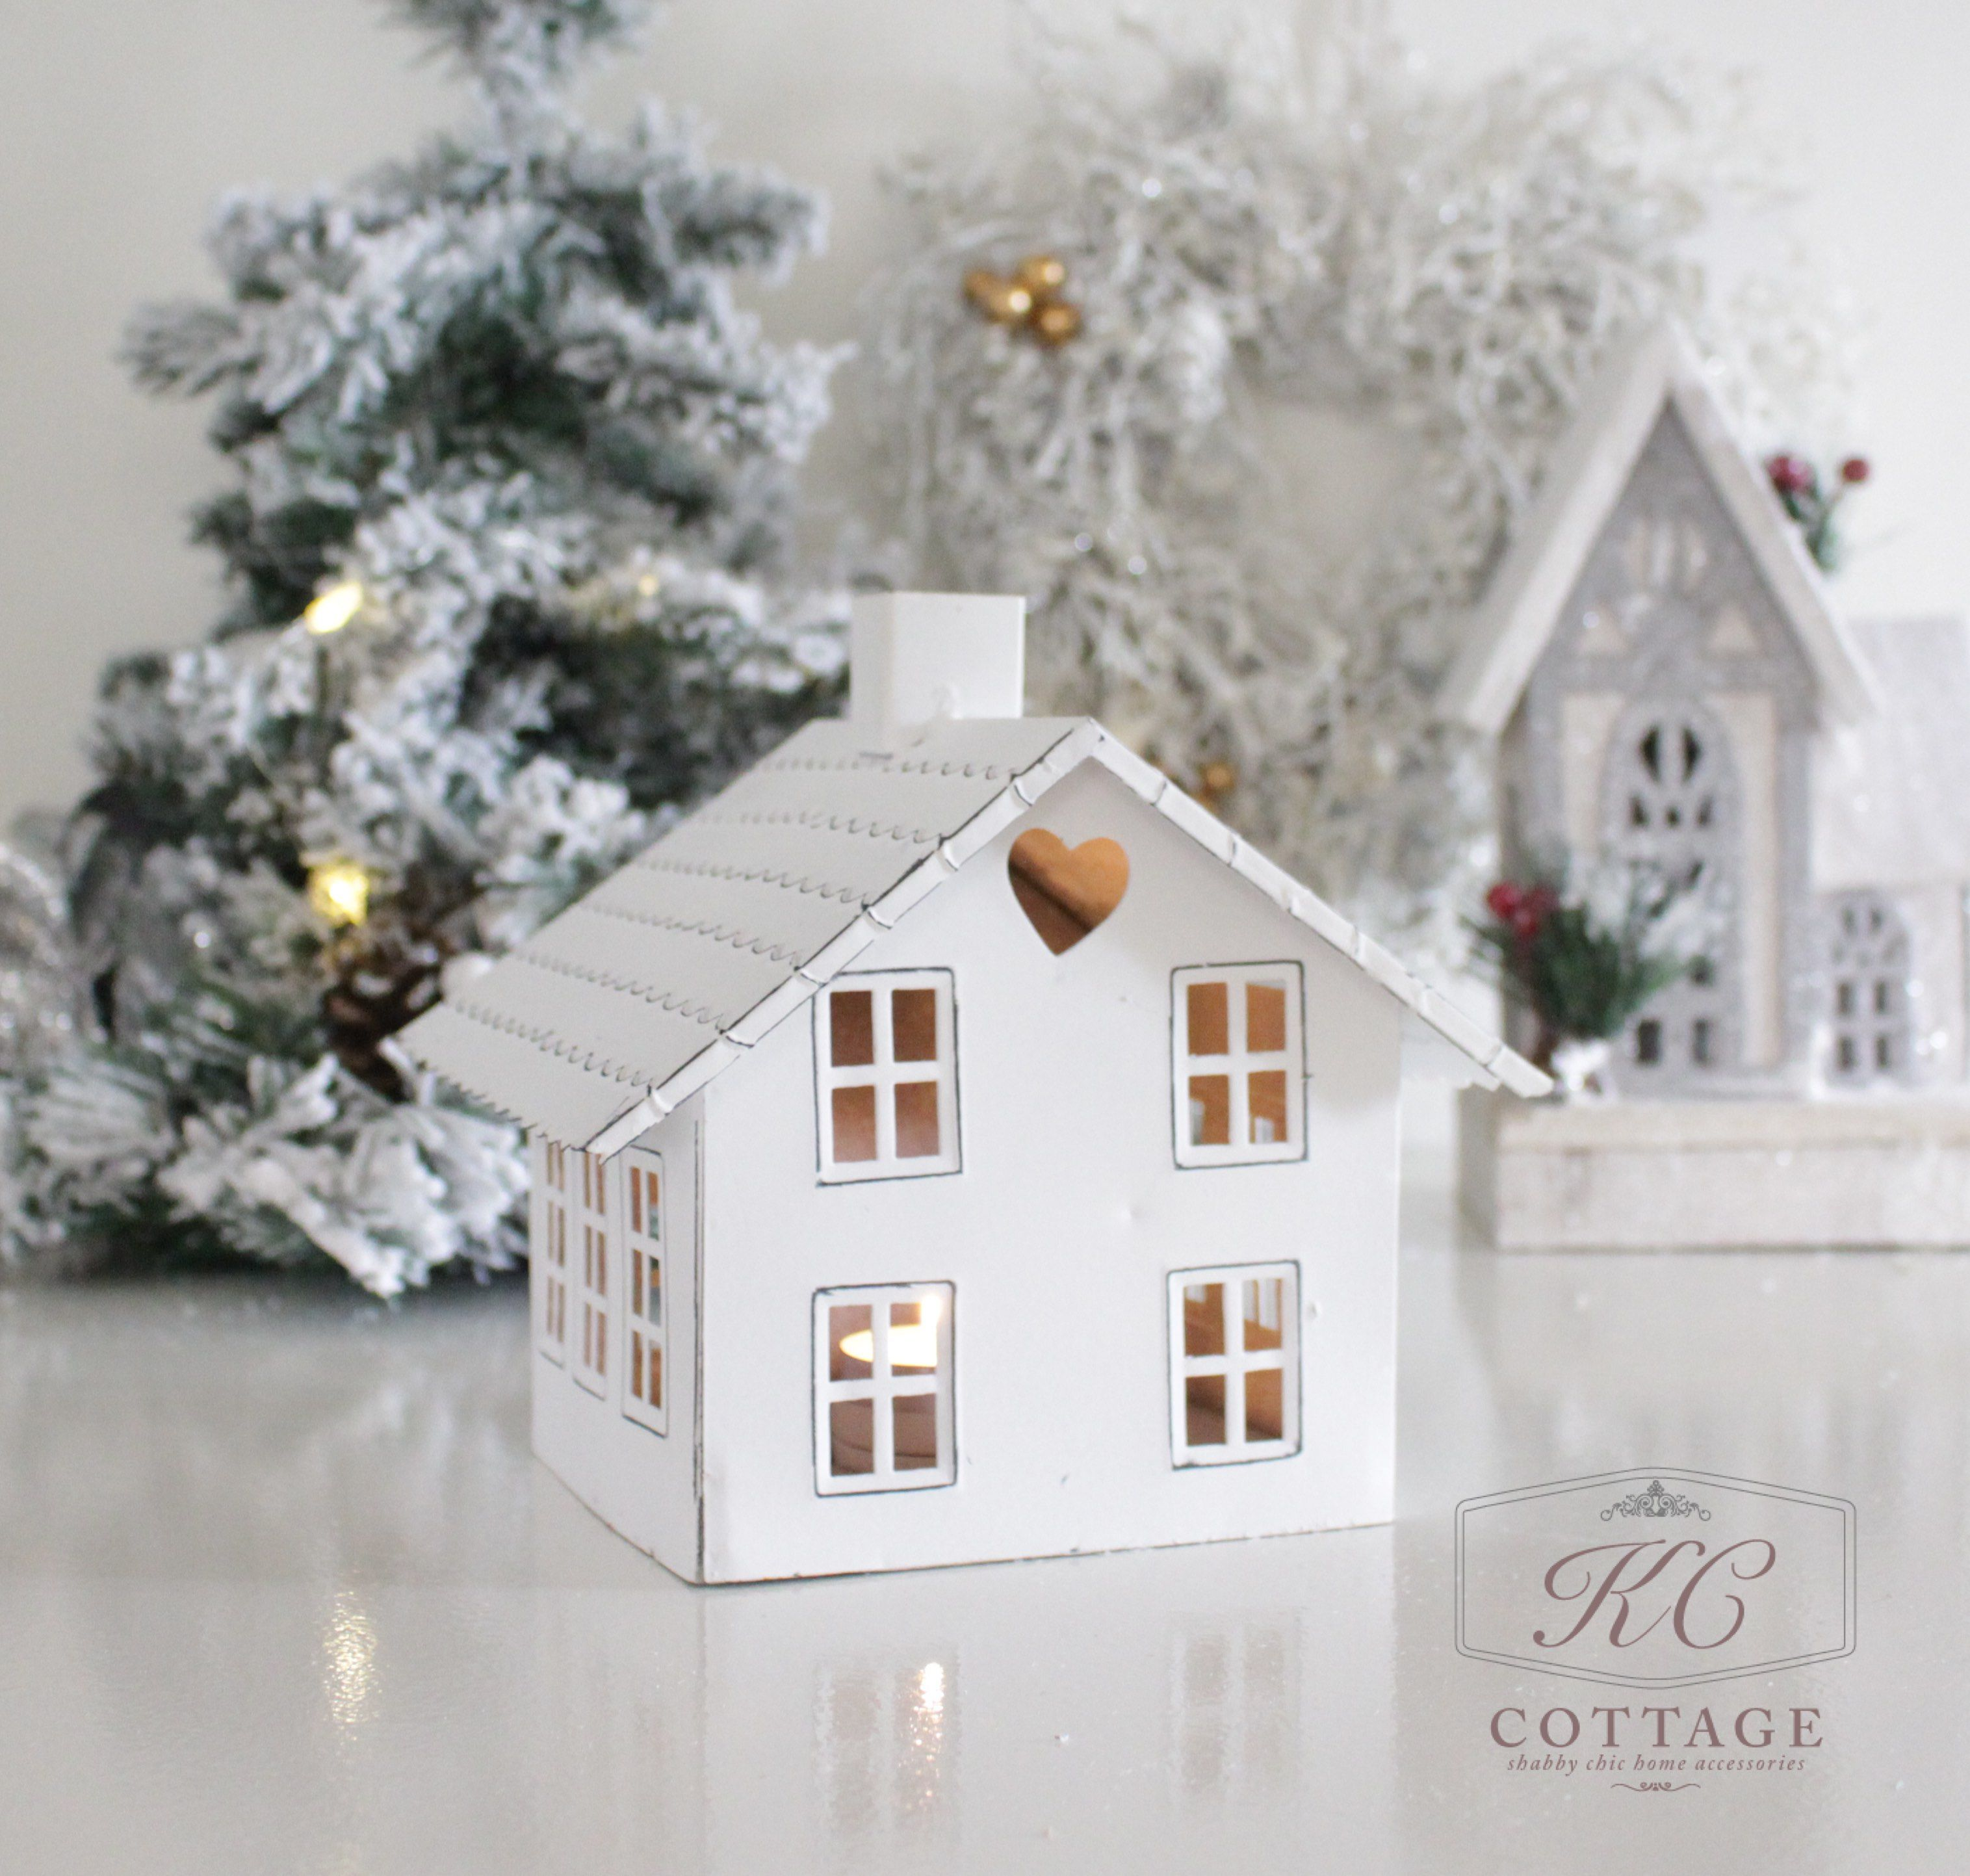 White Tealight Christmas Cottage with Chimney White Tealight Christmas Cottage with Chimney